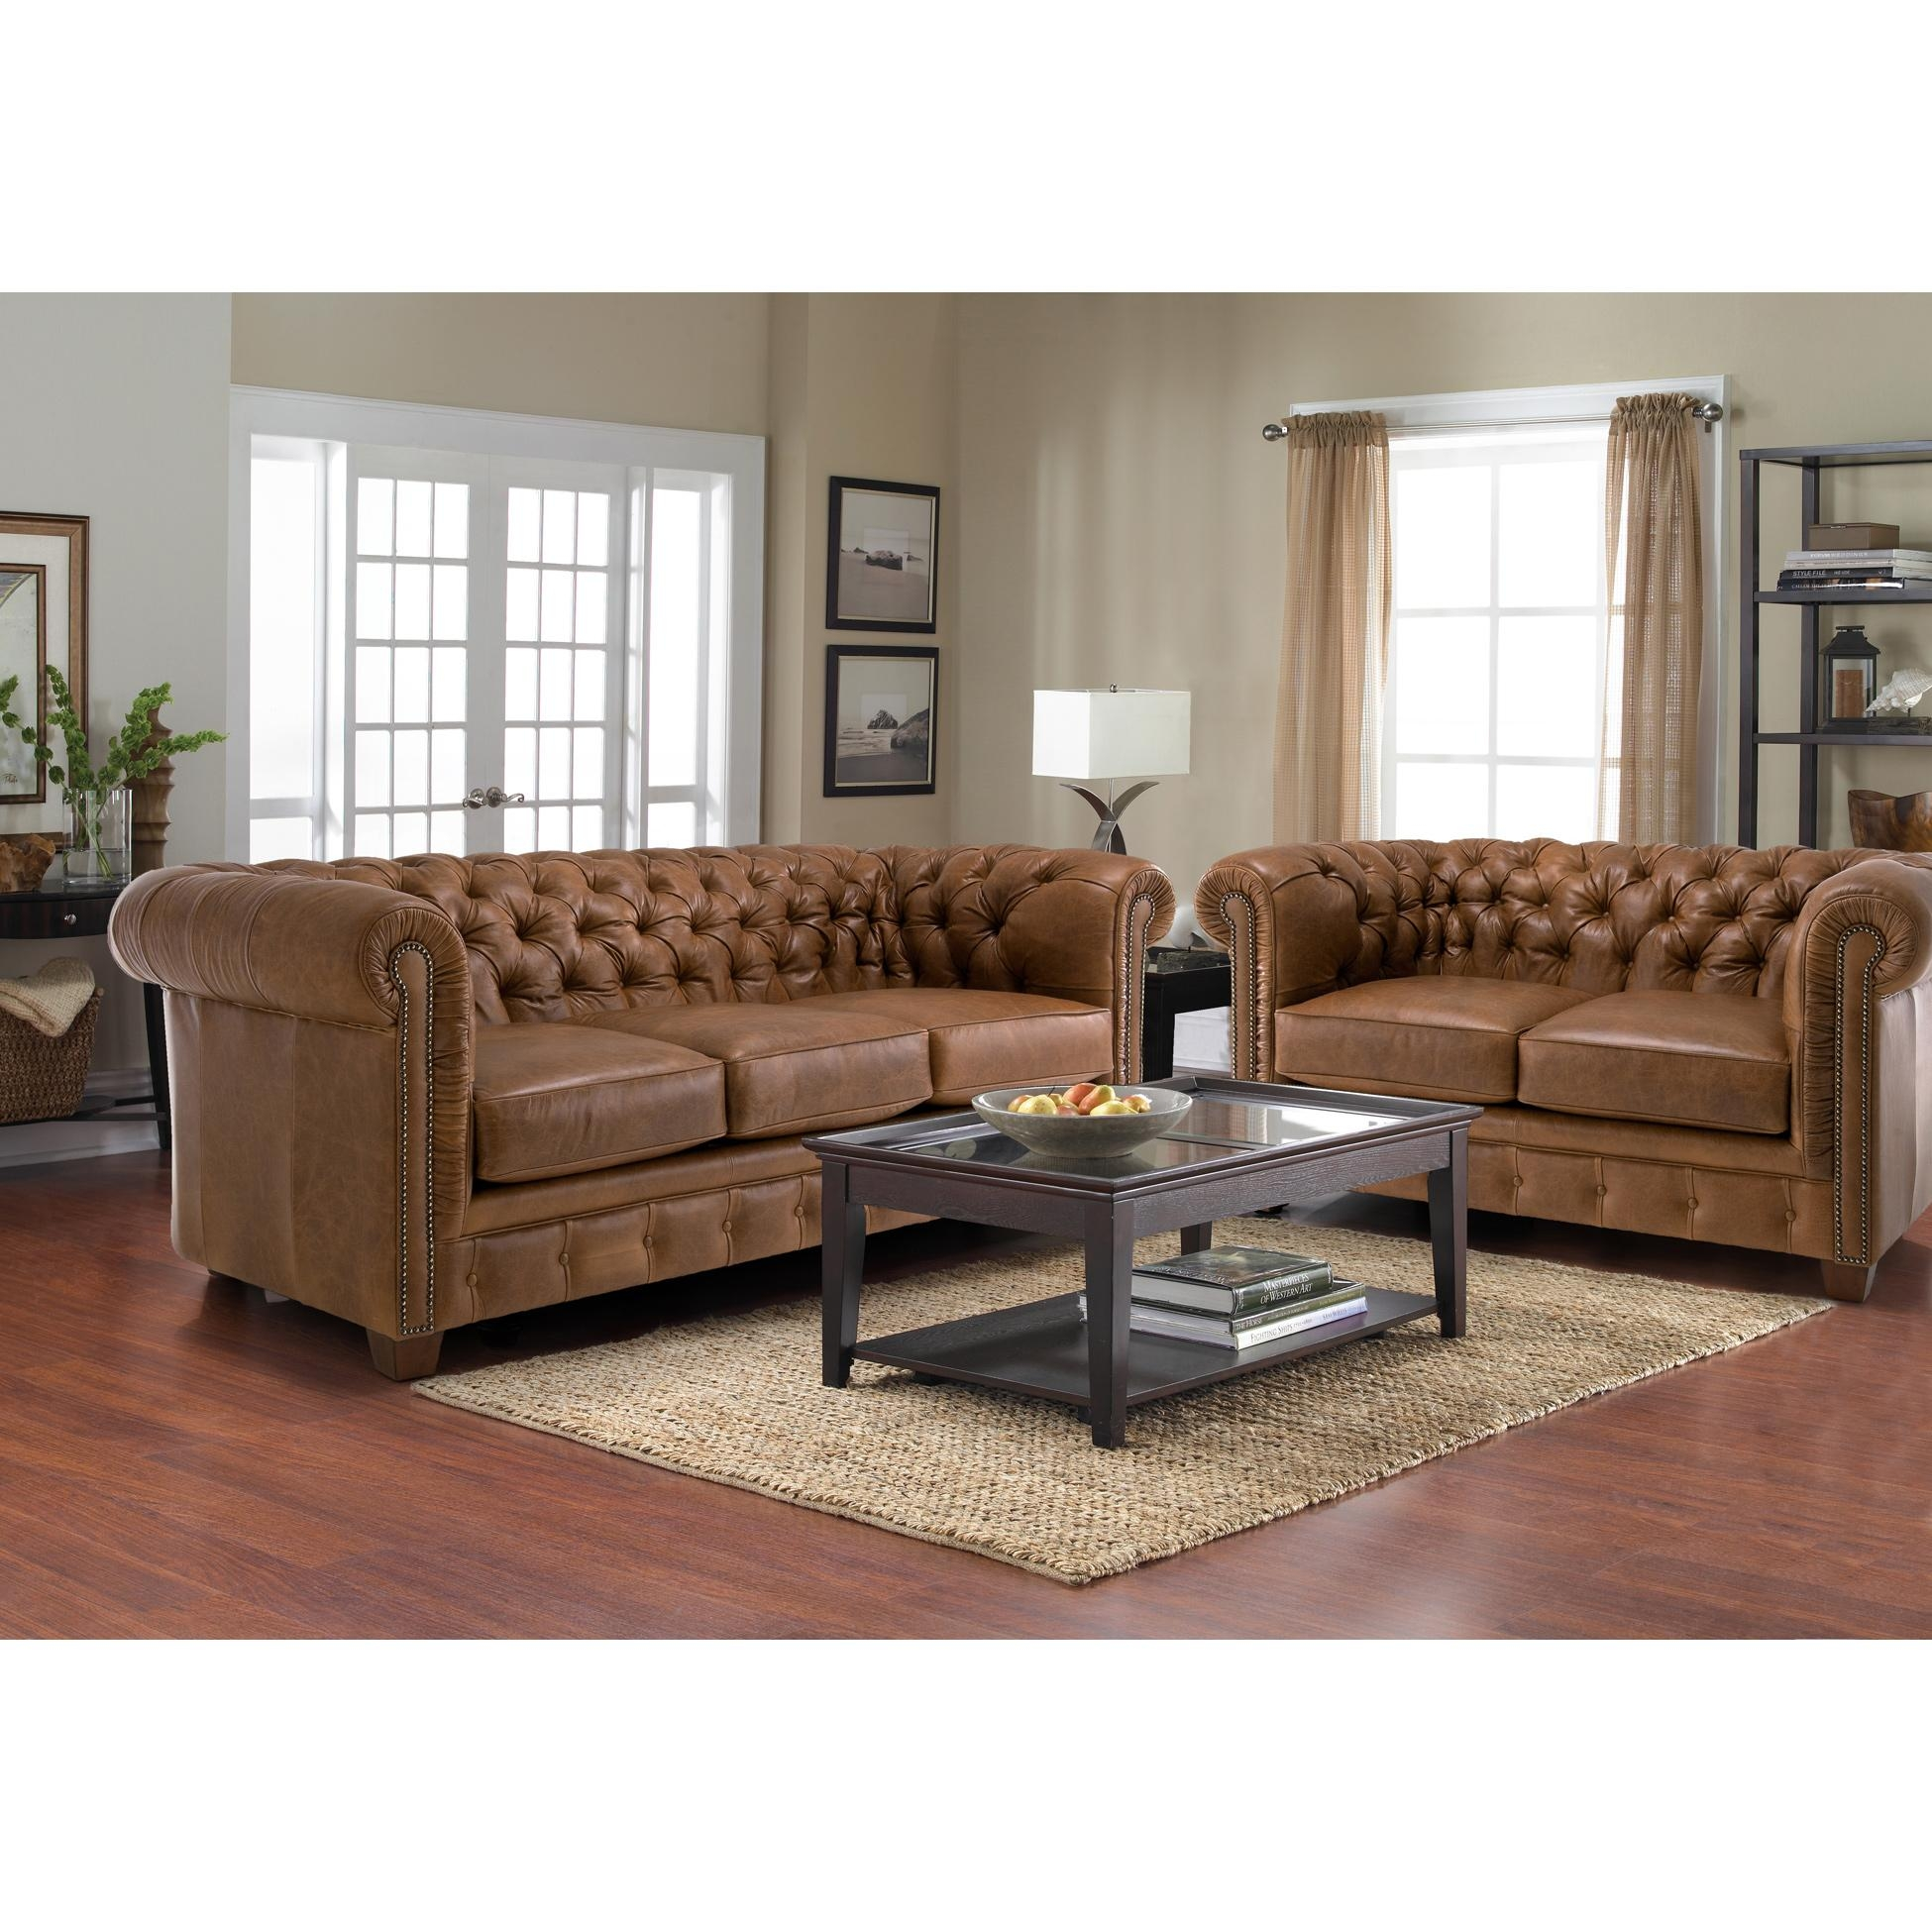 Furniture: Enchanting Chesterfield Couch For Living Room Furniture Within Brown Tufted Sofas (View 20 of 20)